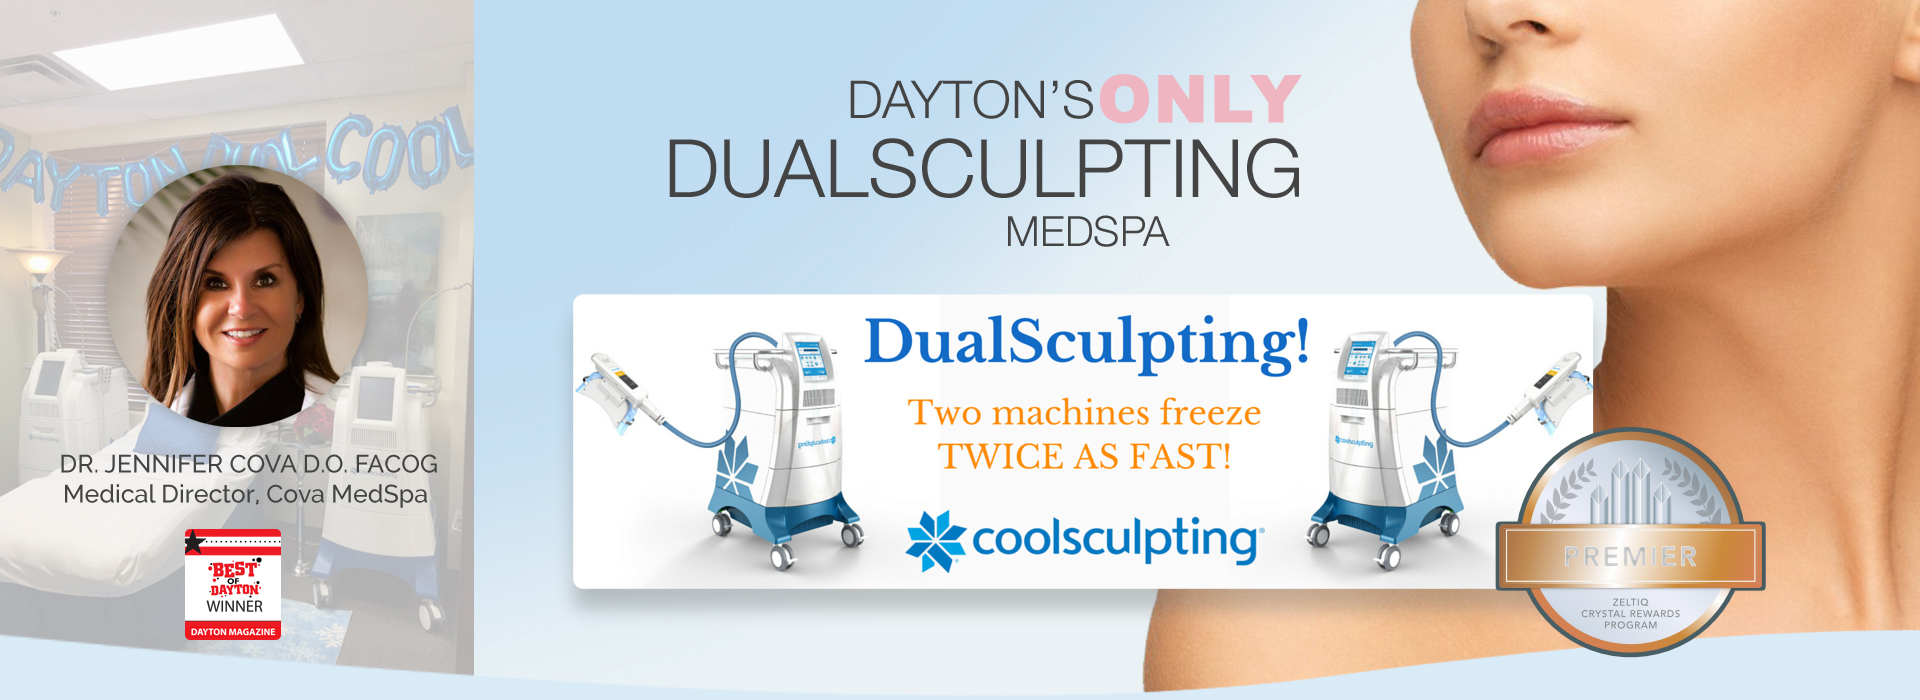 Dayton Dual CoolSculpting by Cova Medspa